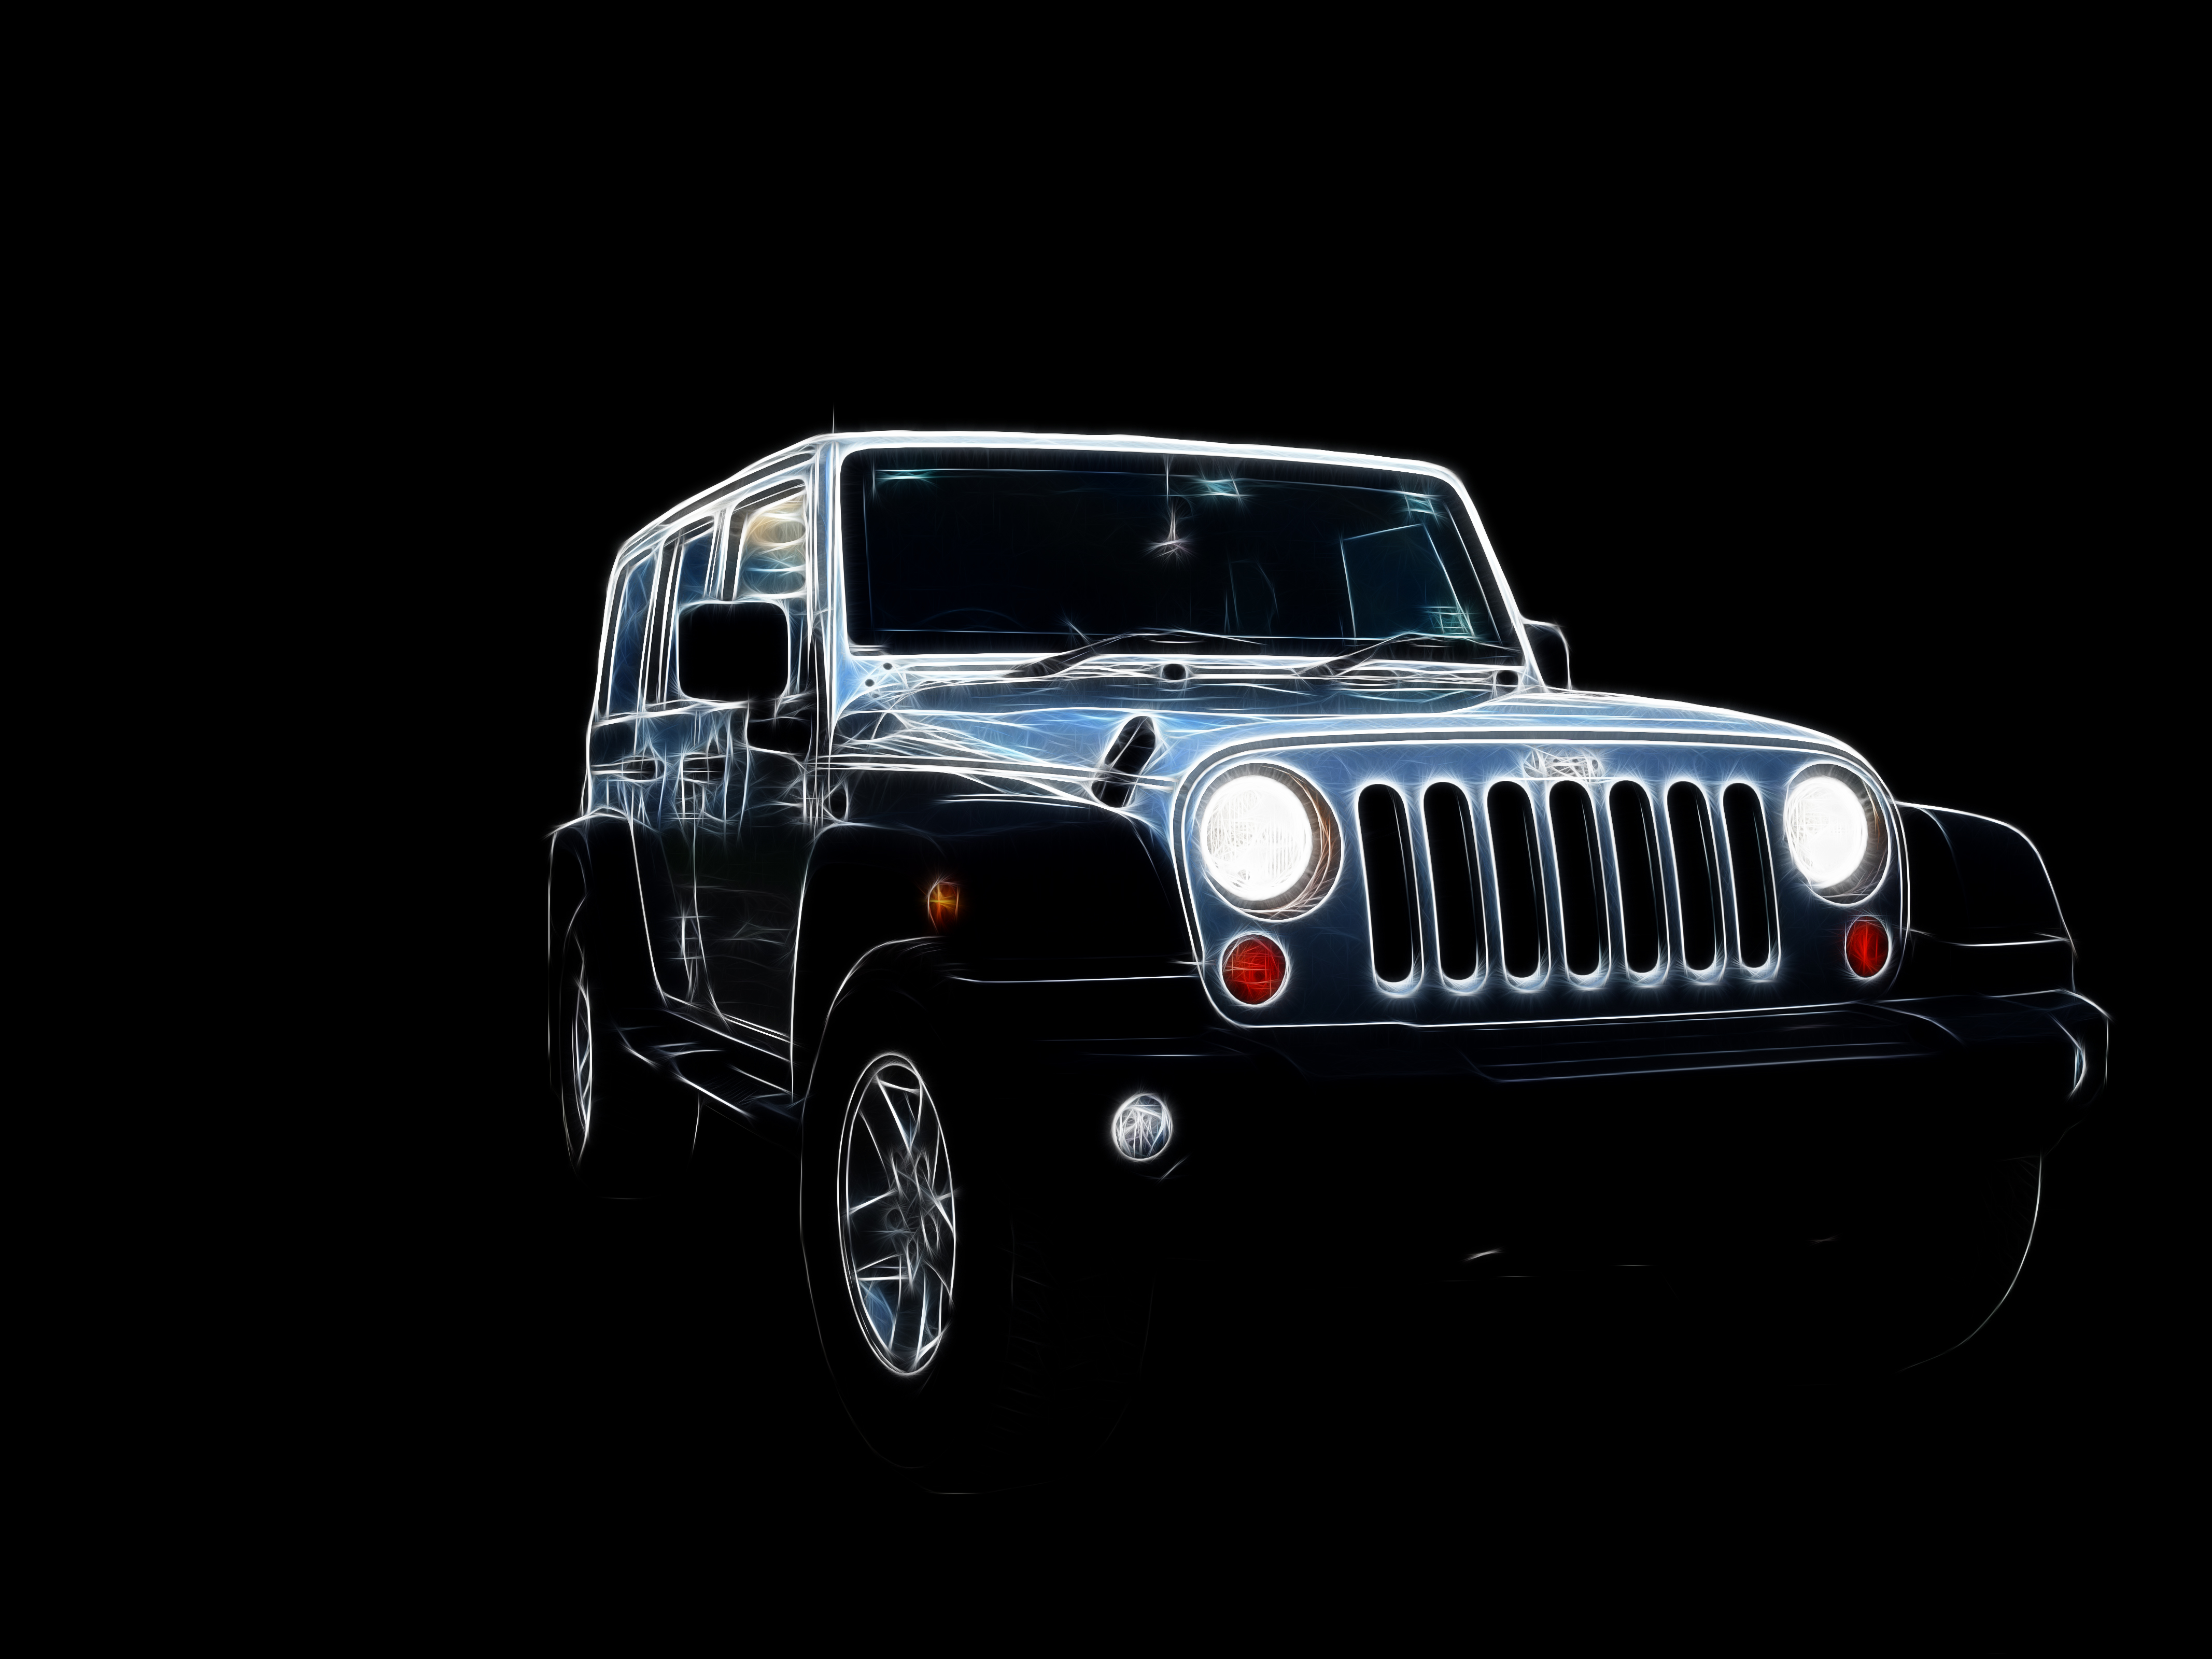 jeep Music and Dance HD Wallpaper